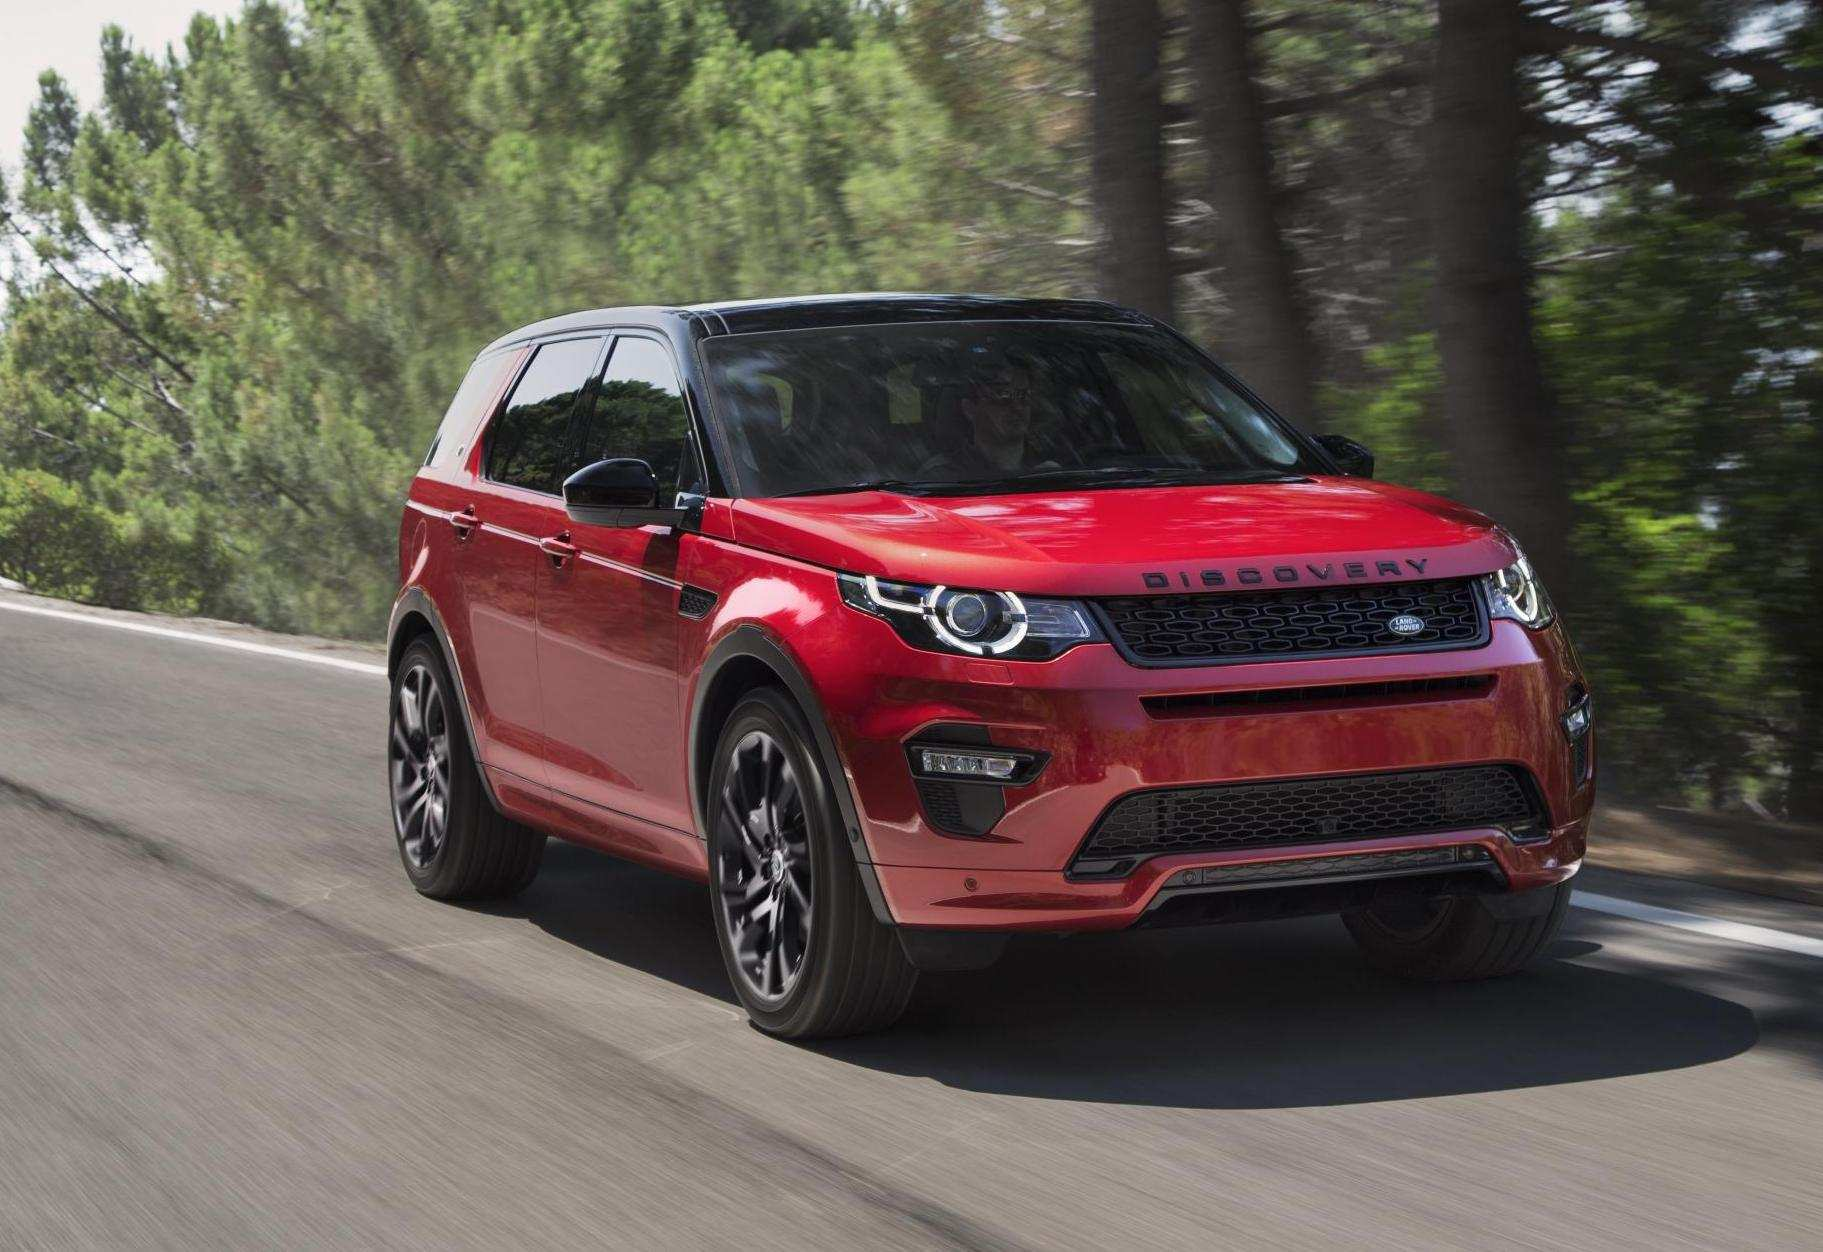 70 All New 2020 Land Rover Discovery Pricing